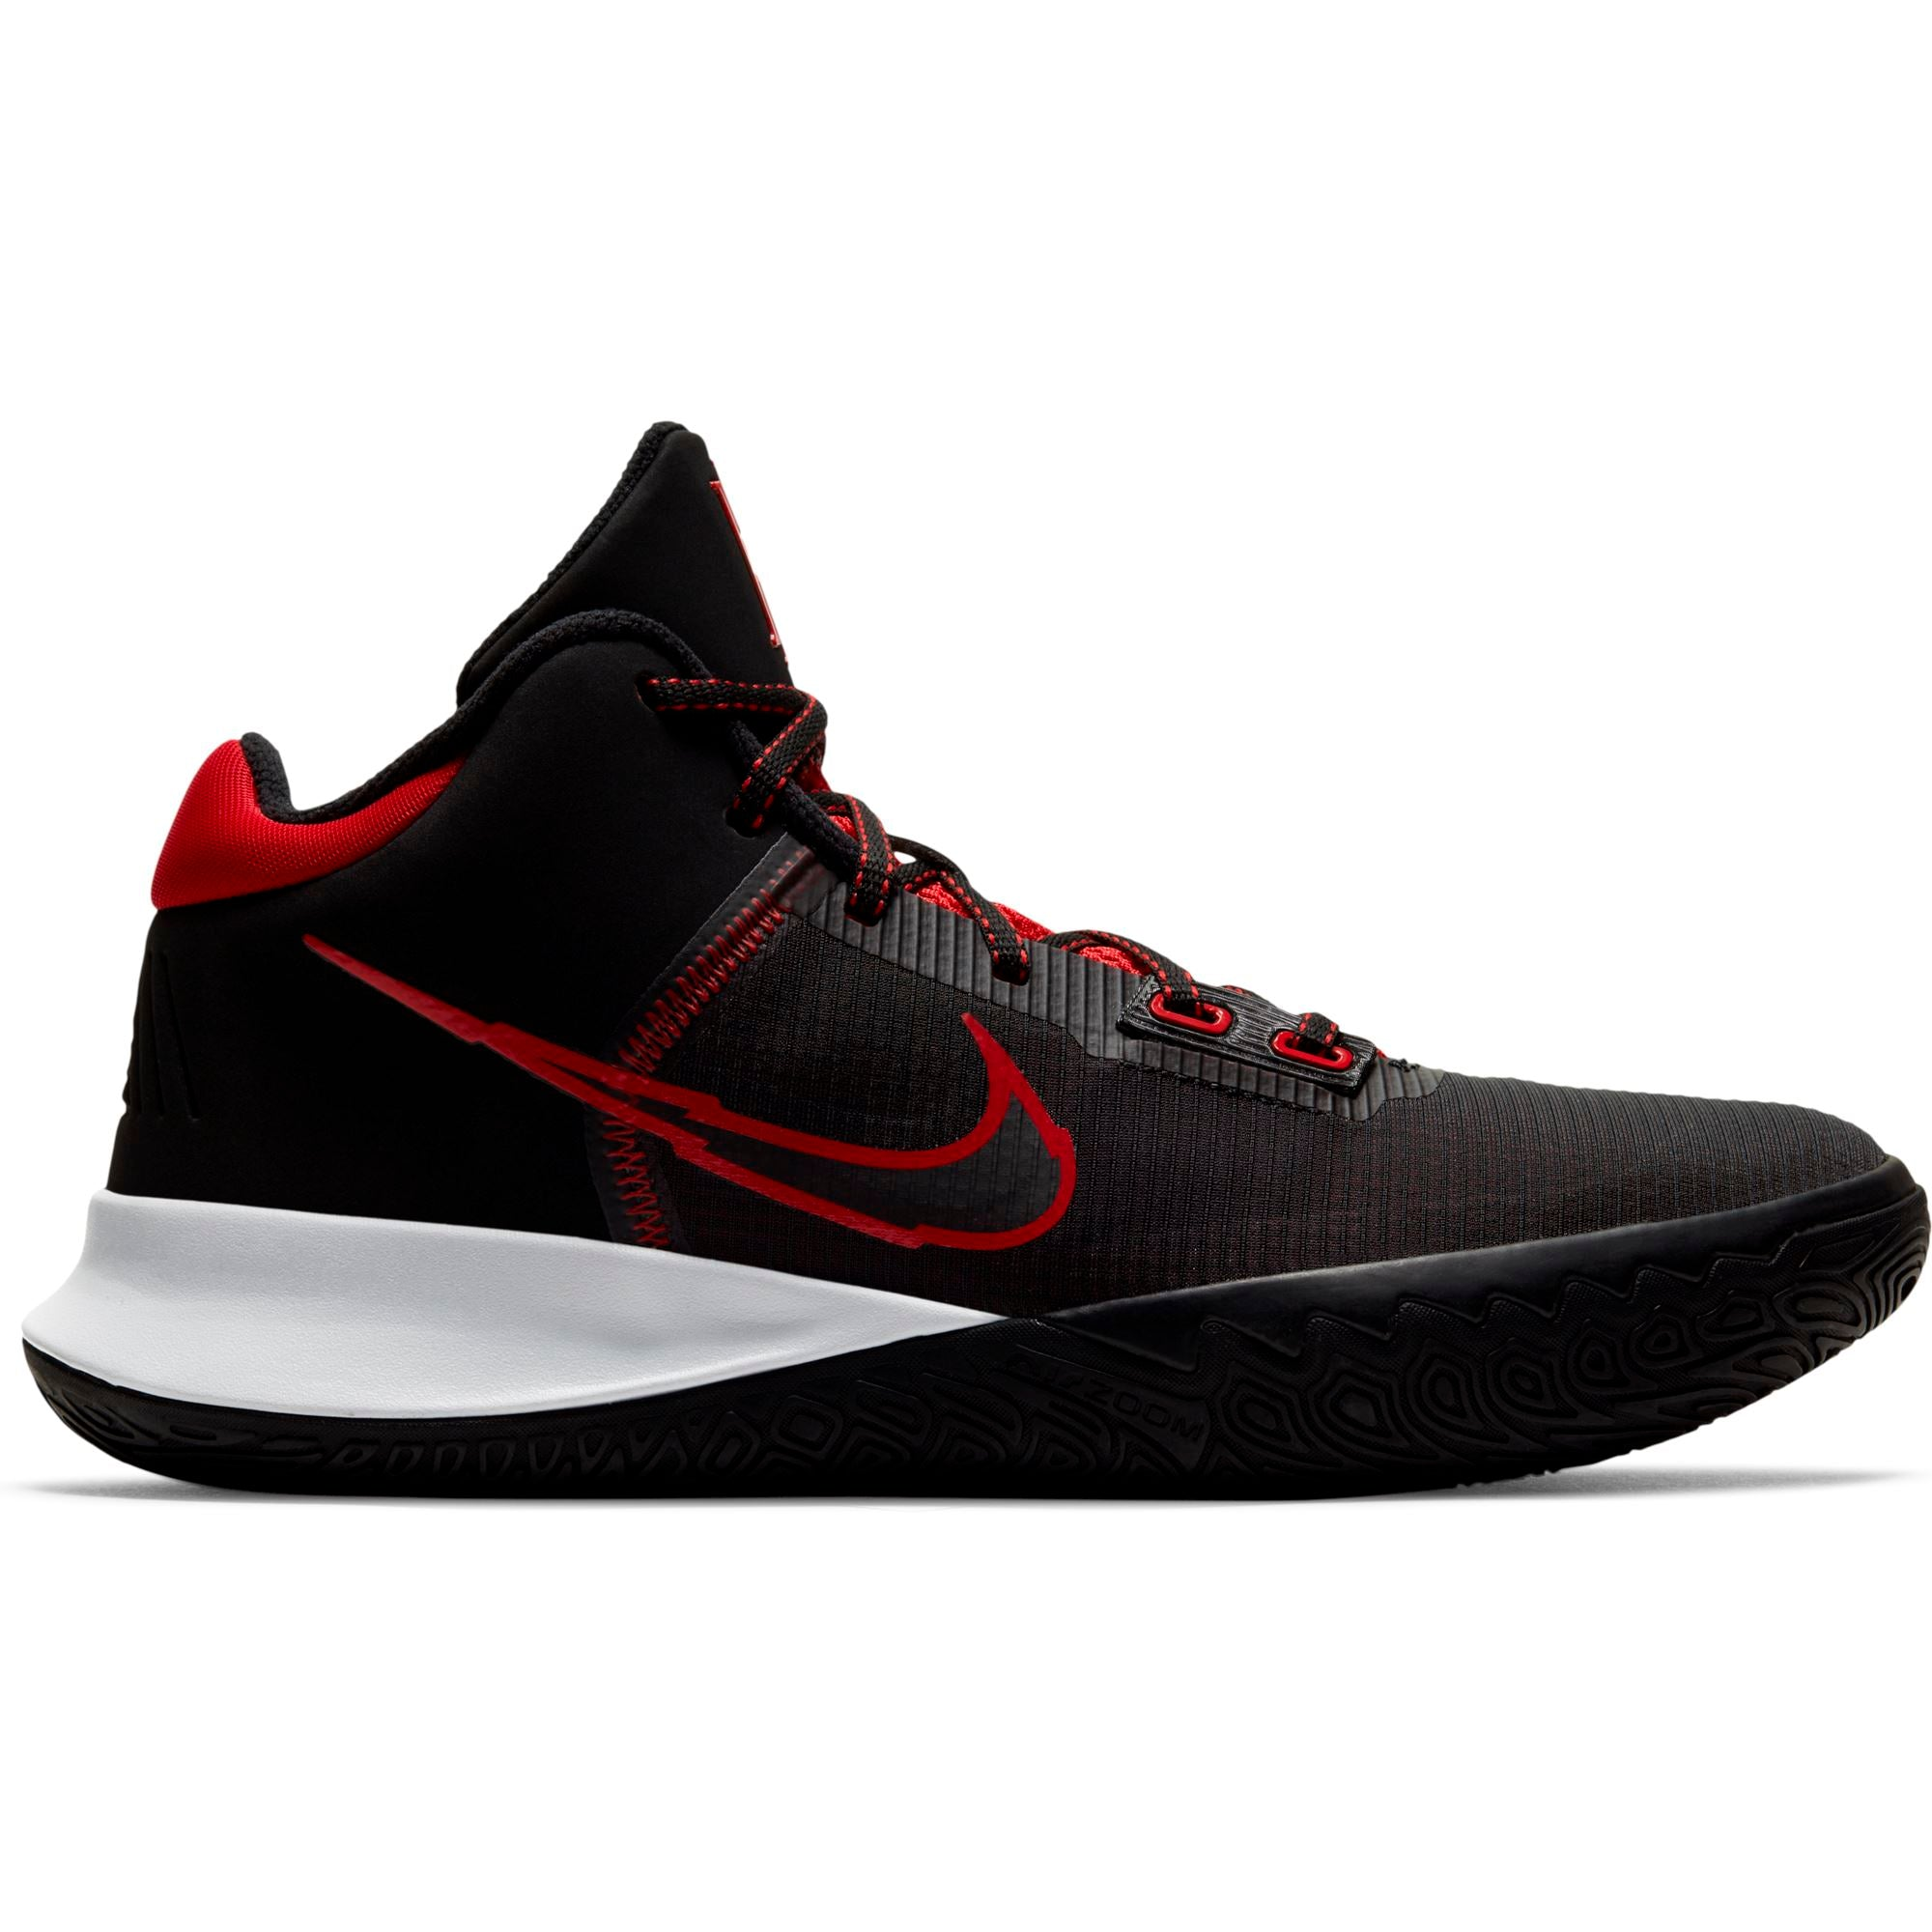 Nike Kyrie Flytrap 4 - Black/University Red-White SP-Footwear-Mens Nike